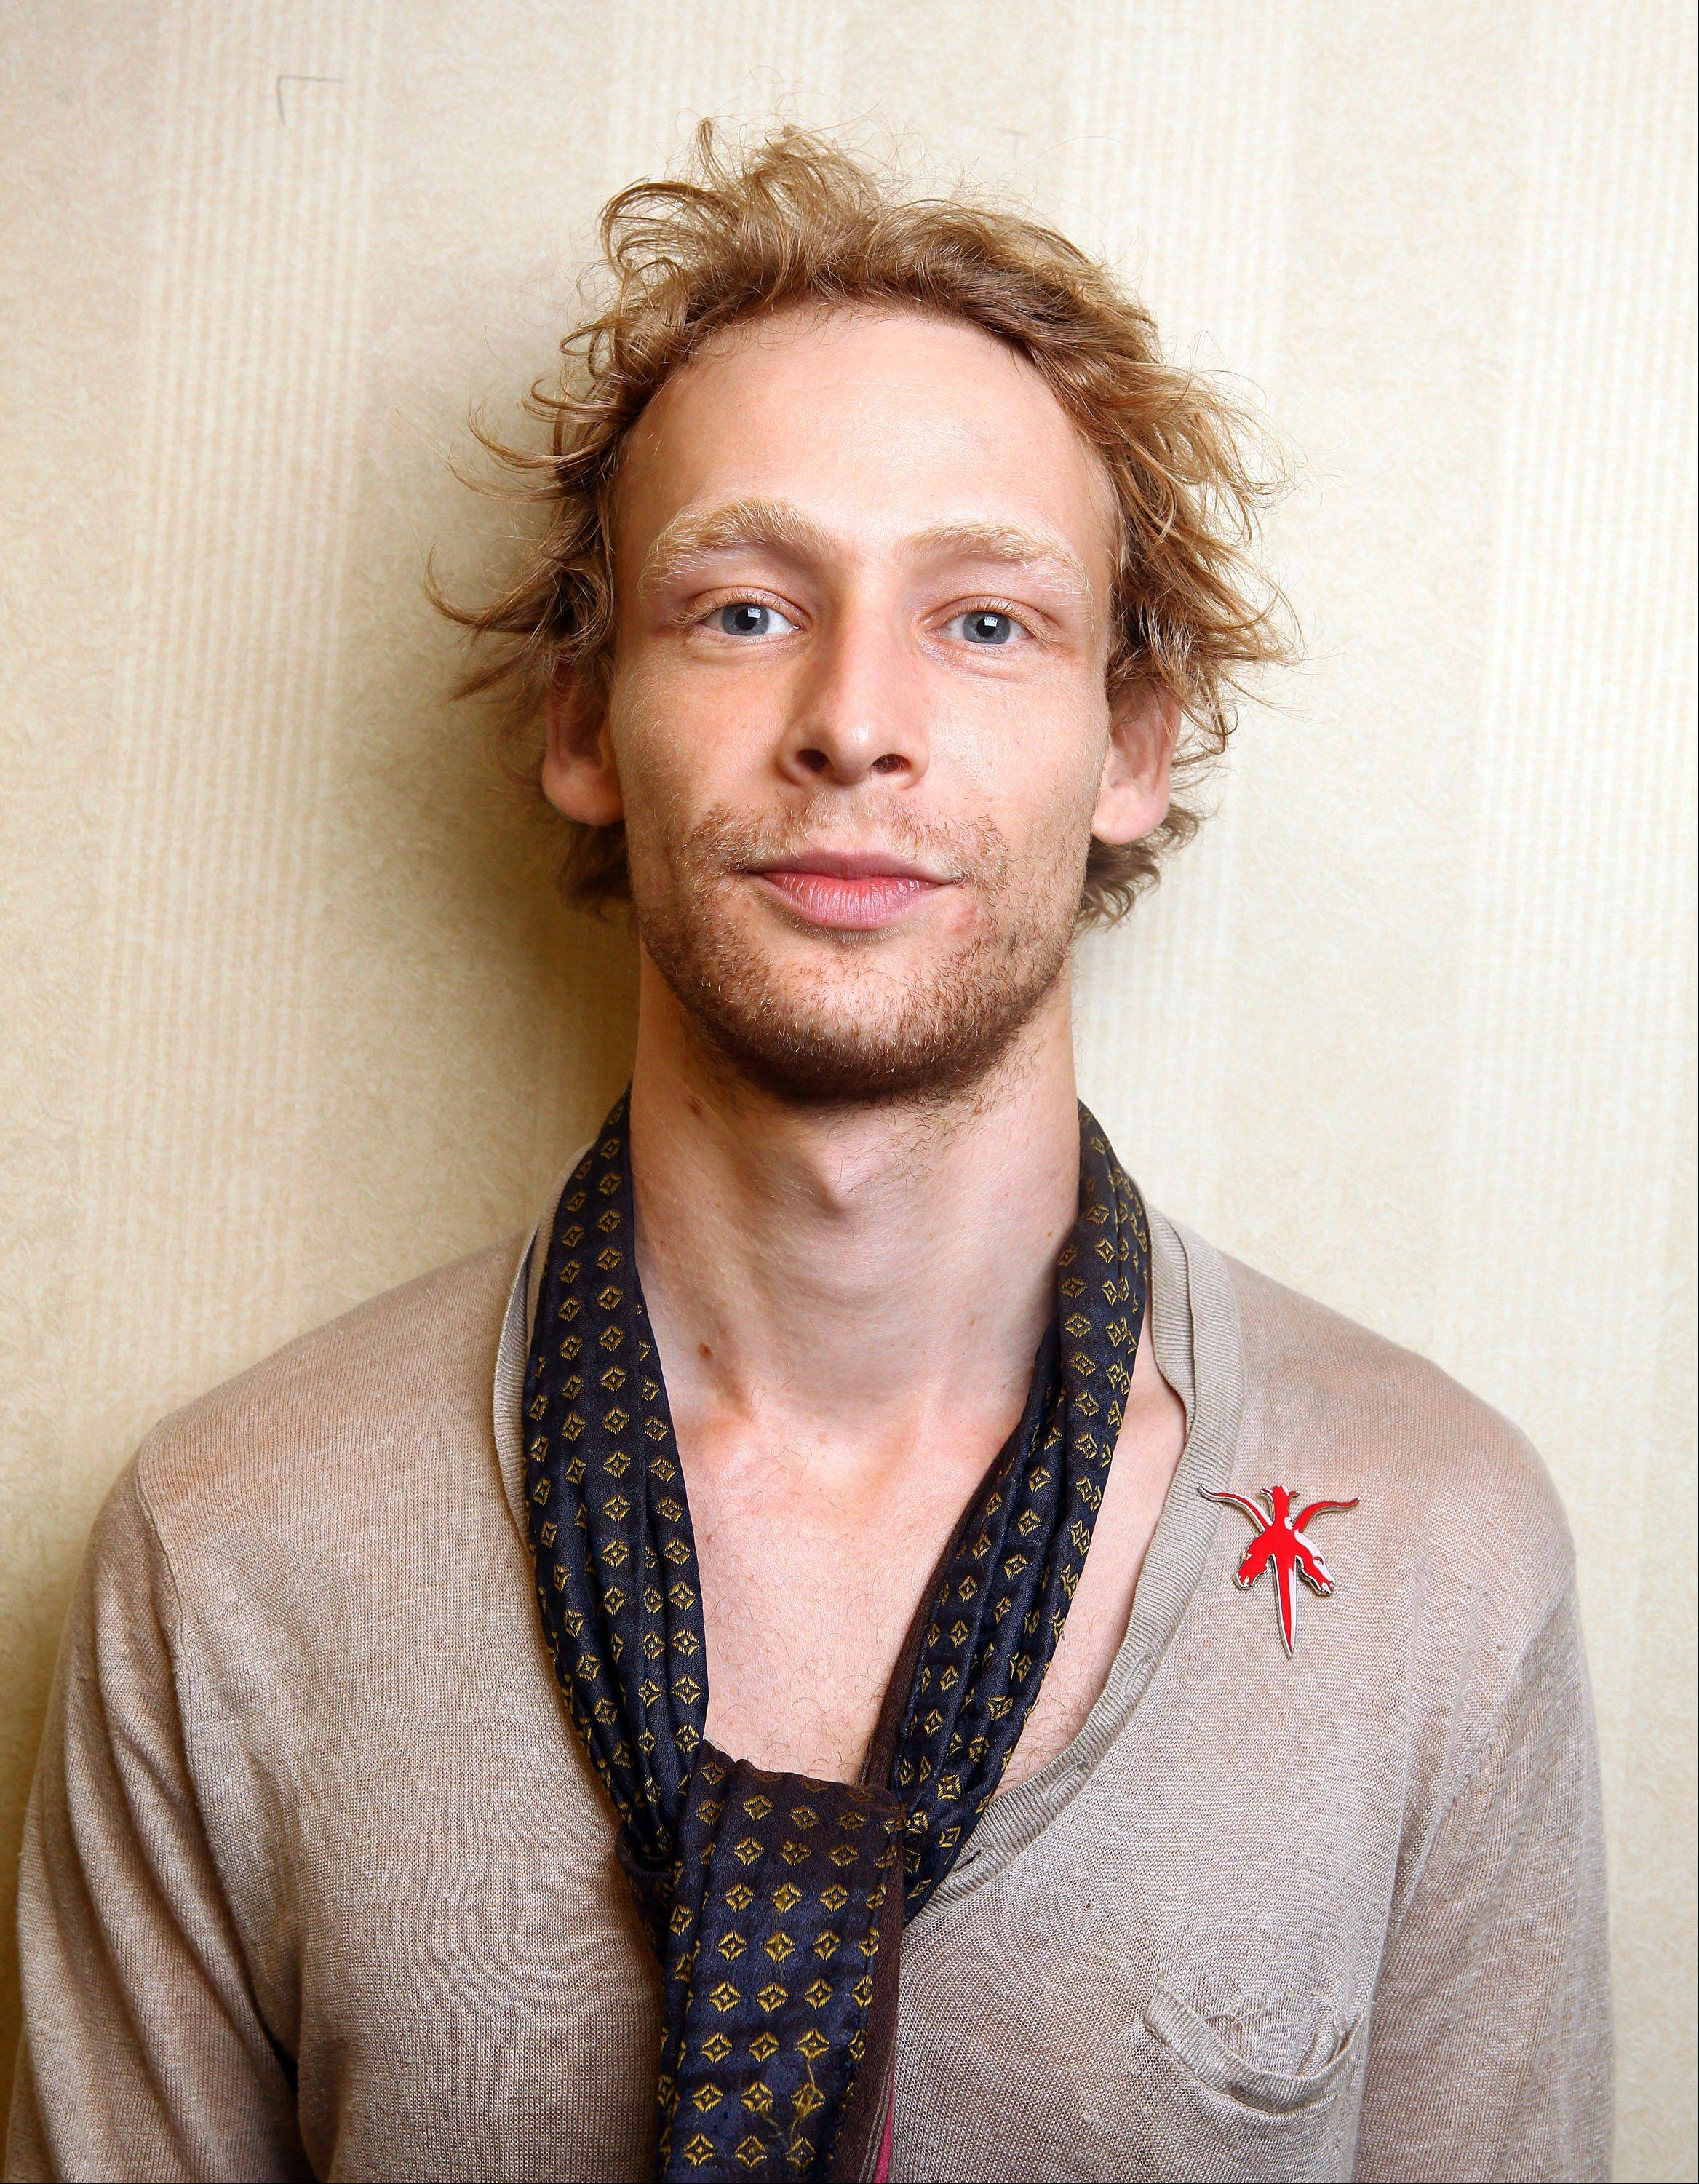 Actor Johnny Lewis poses for a portrait during the 36th Toronto International Film Festival in Toronto.